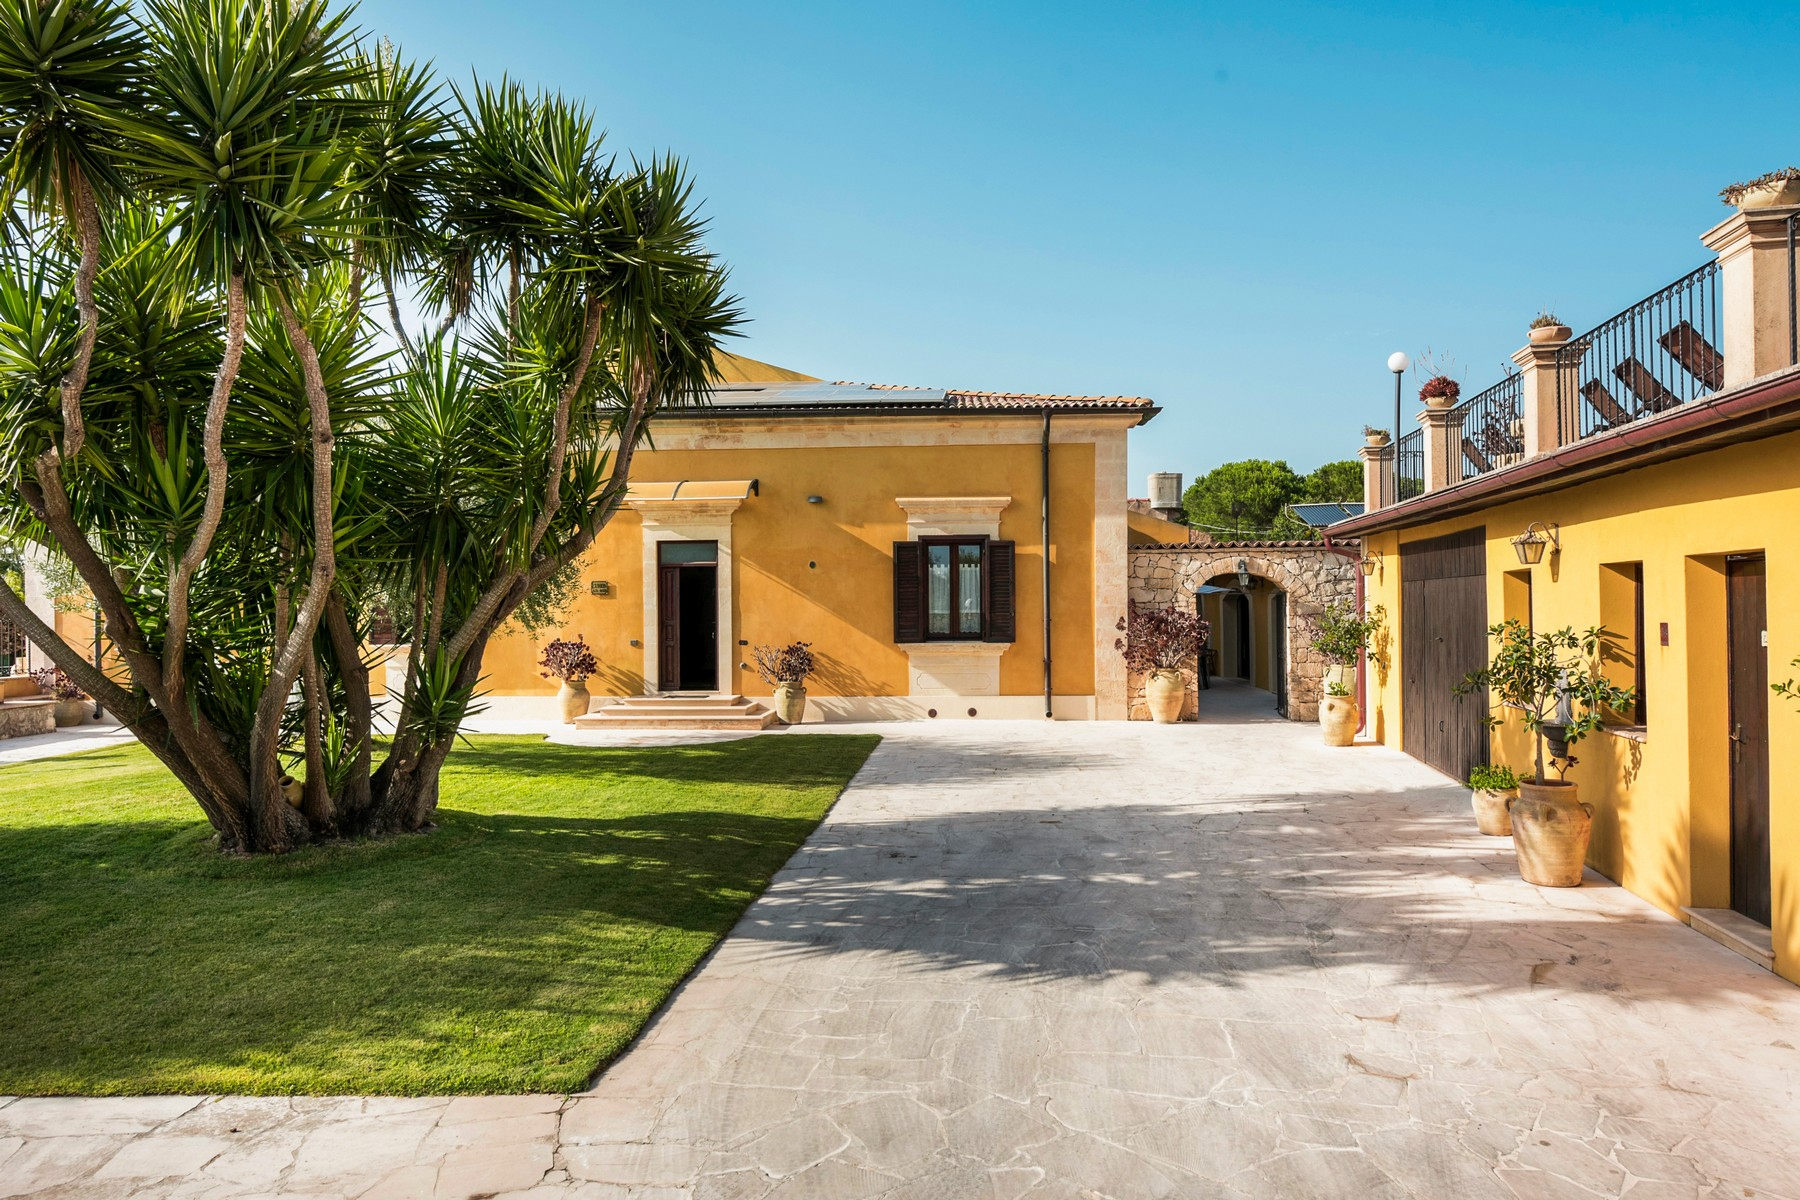 Single Family Homes for Sale at Charming villa with swimming pool Noto, Syracuse Italy